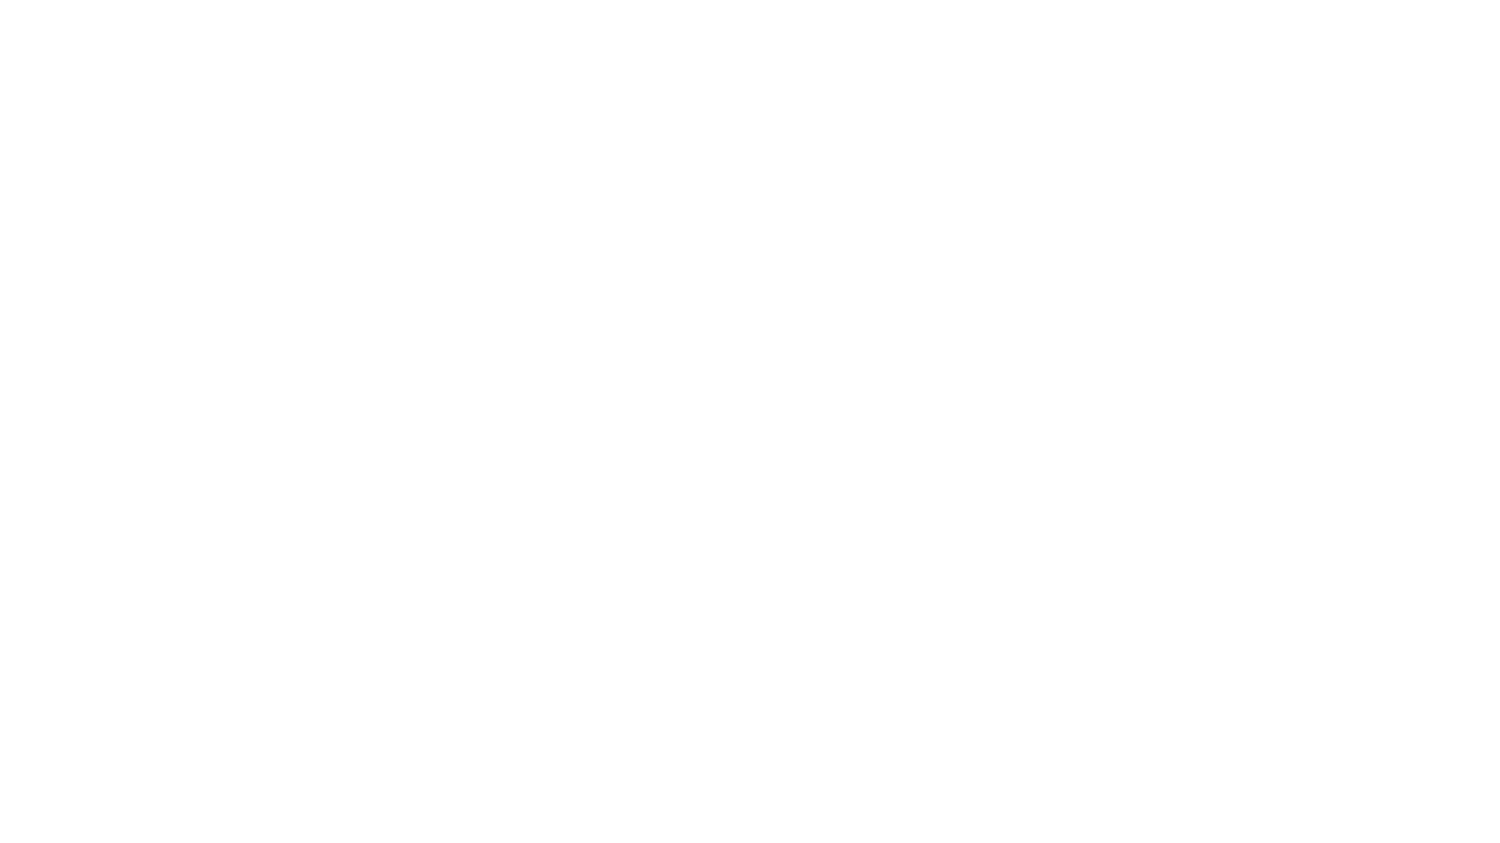 The Hamptons Bakery